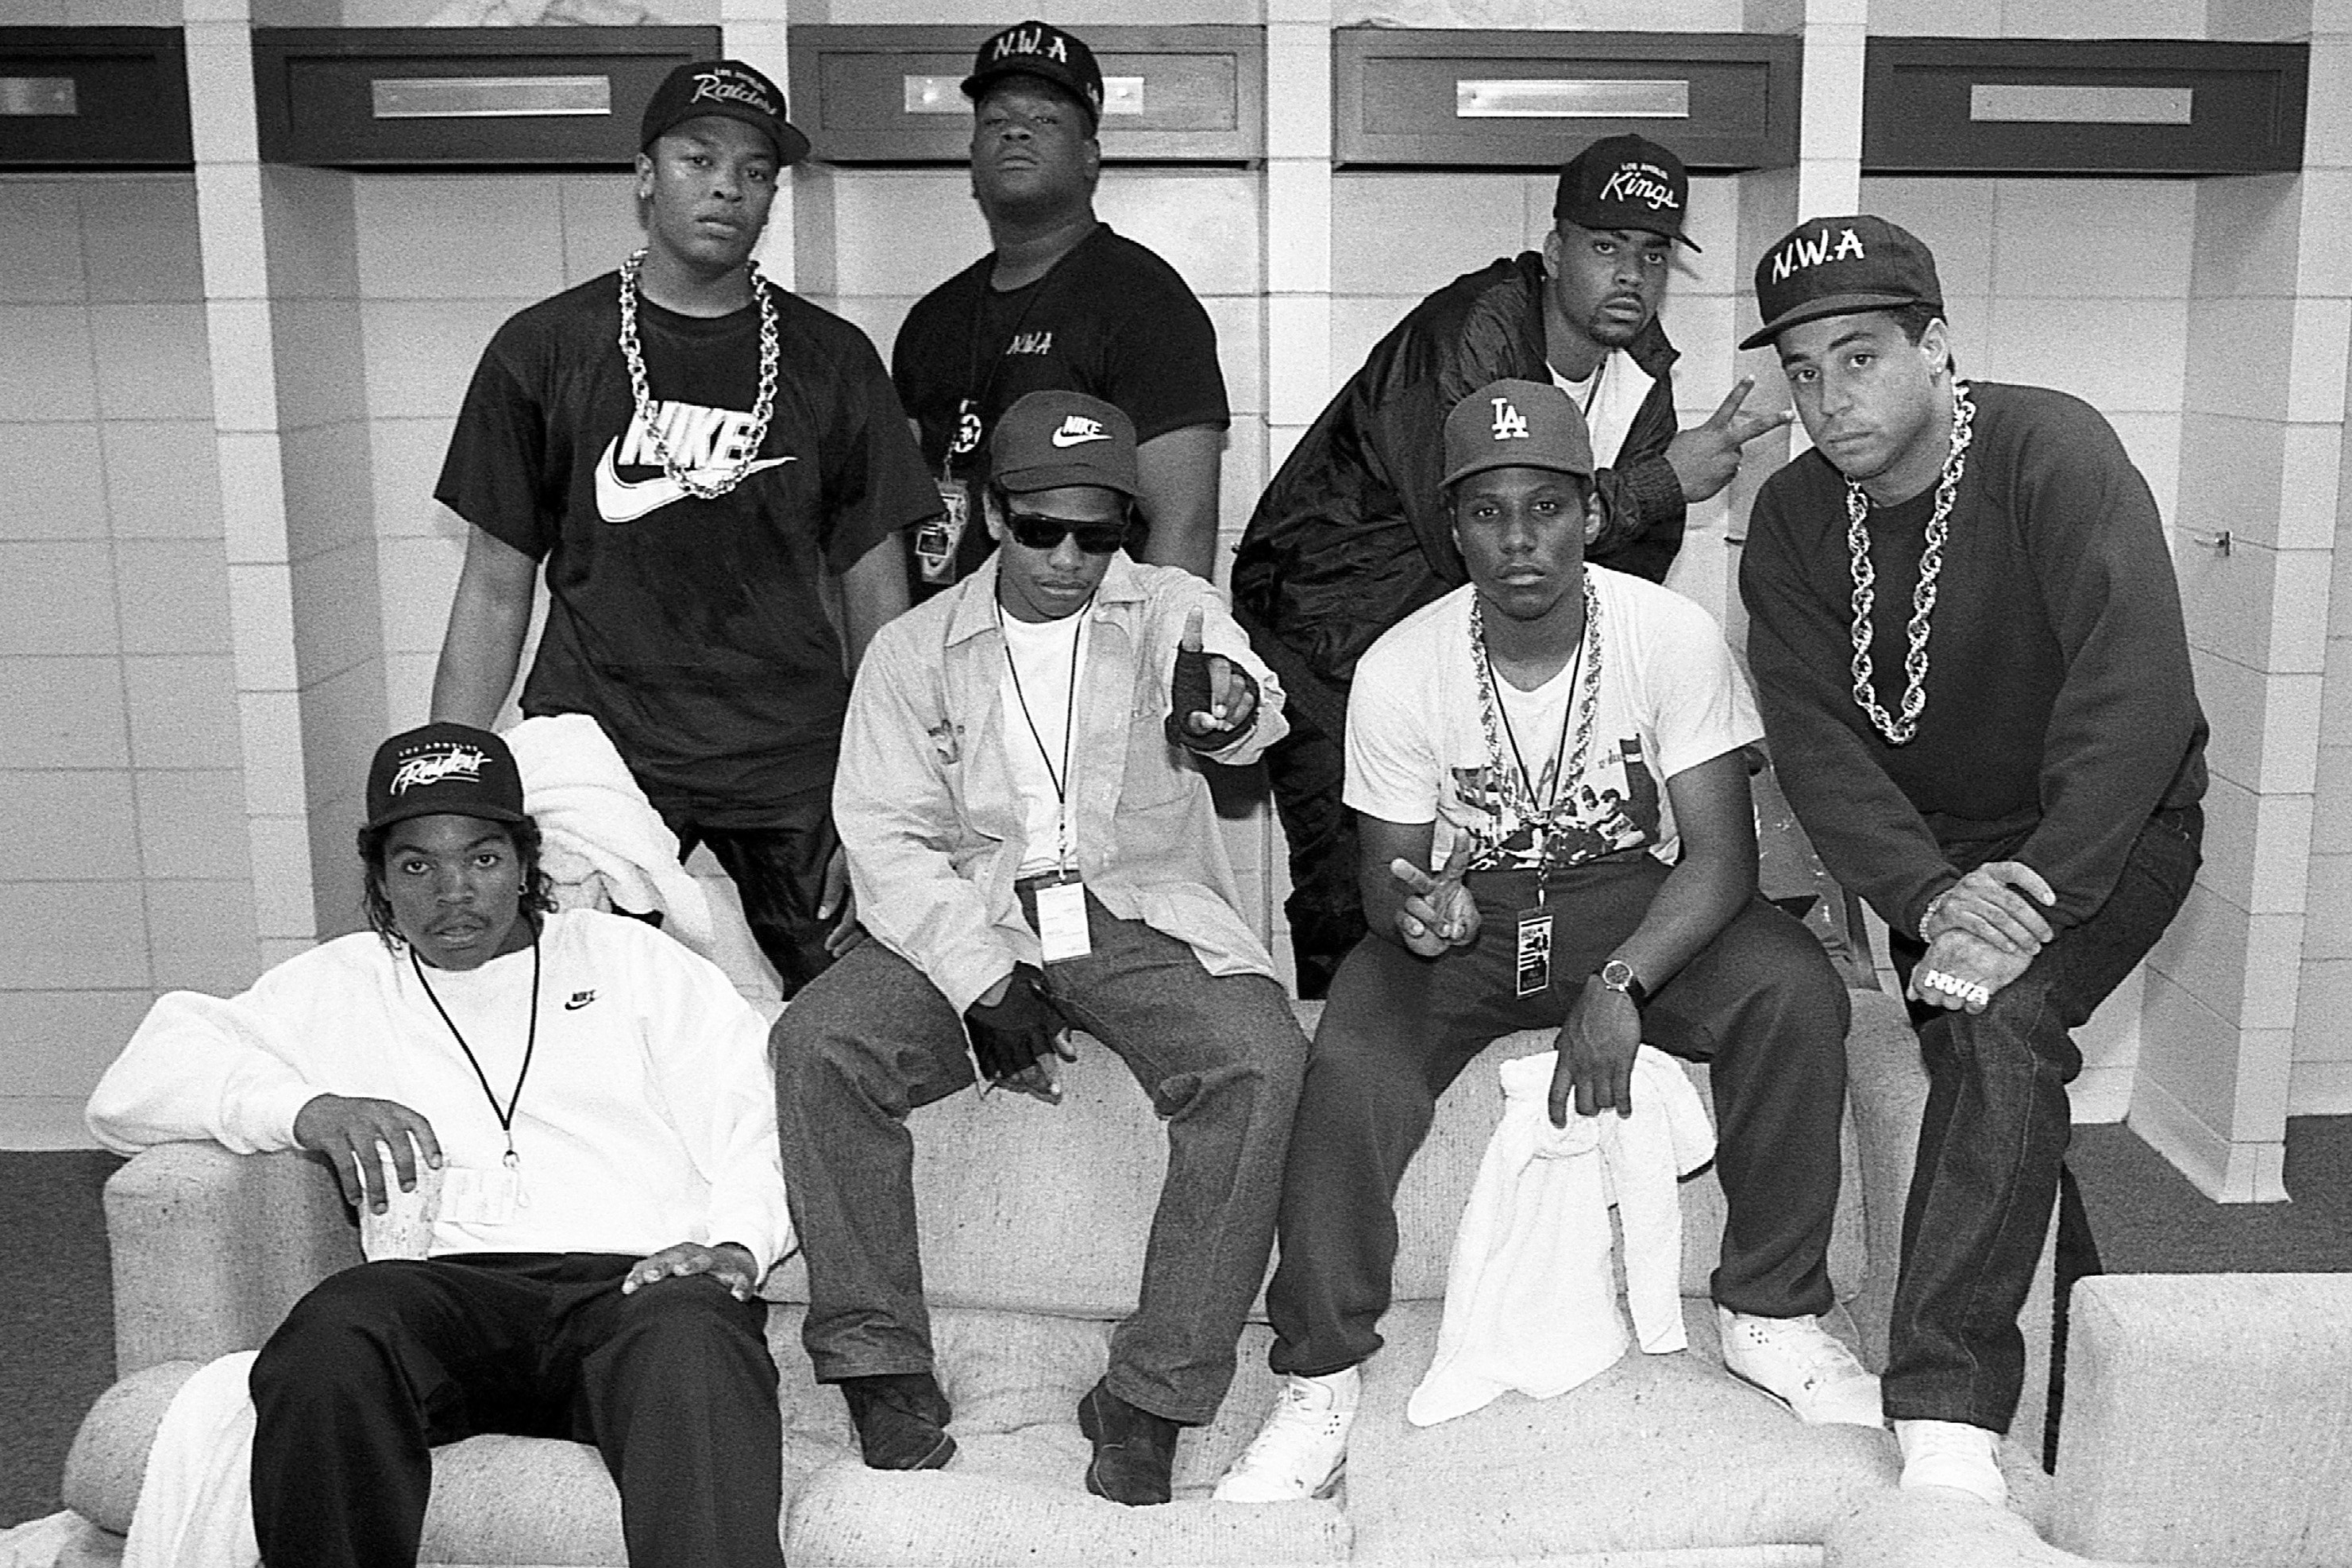 N.W.A's 'Straight Outta Compton': 12 Things You Didn't Know